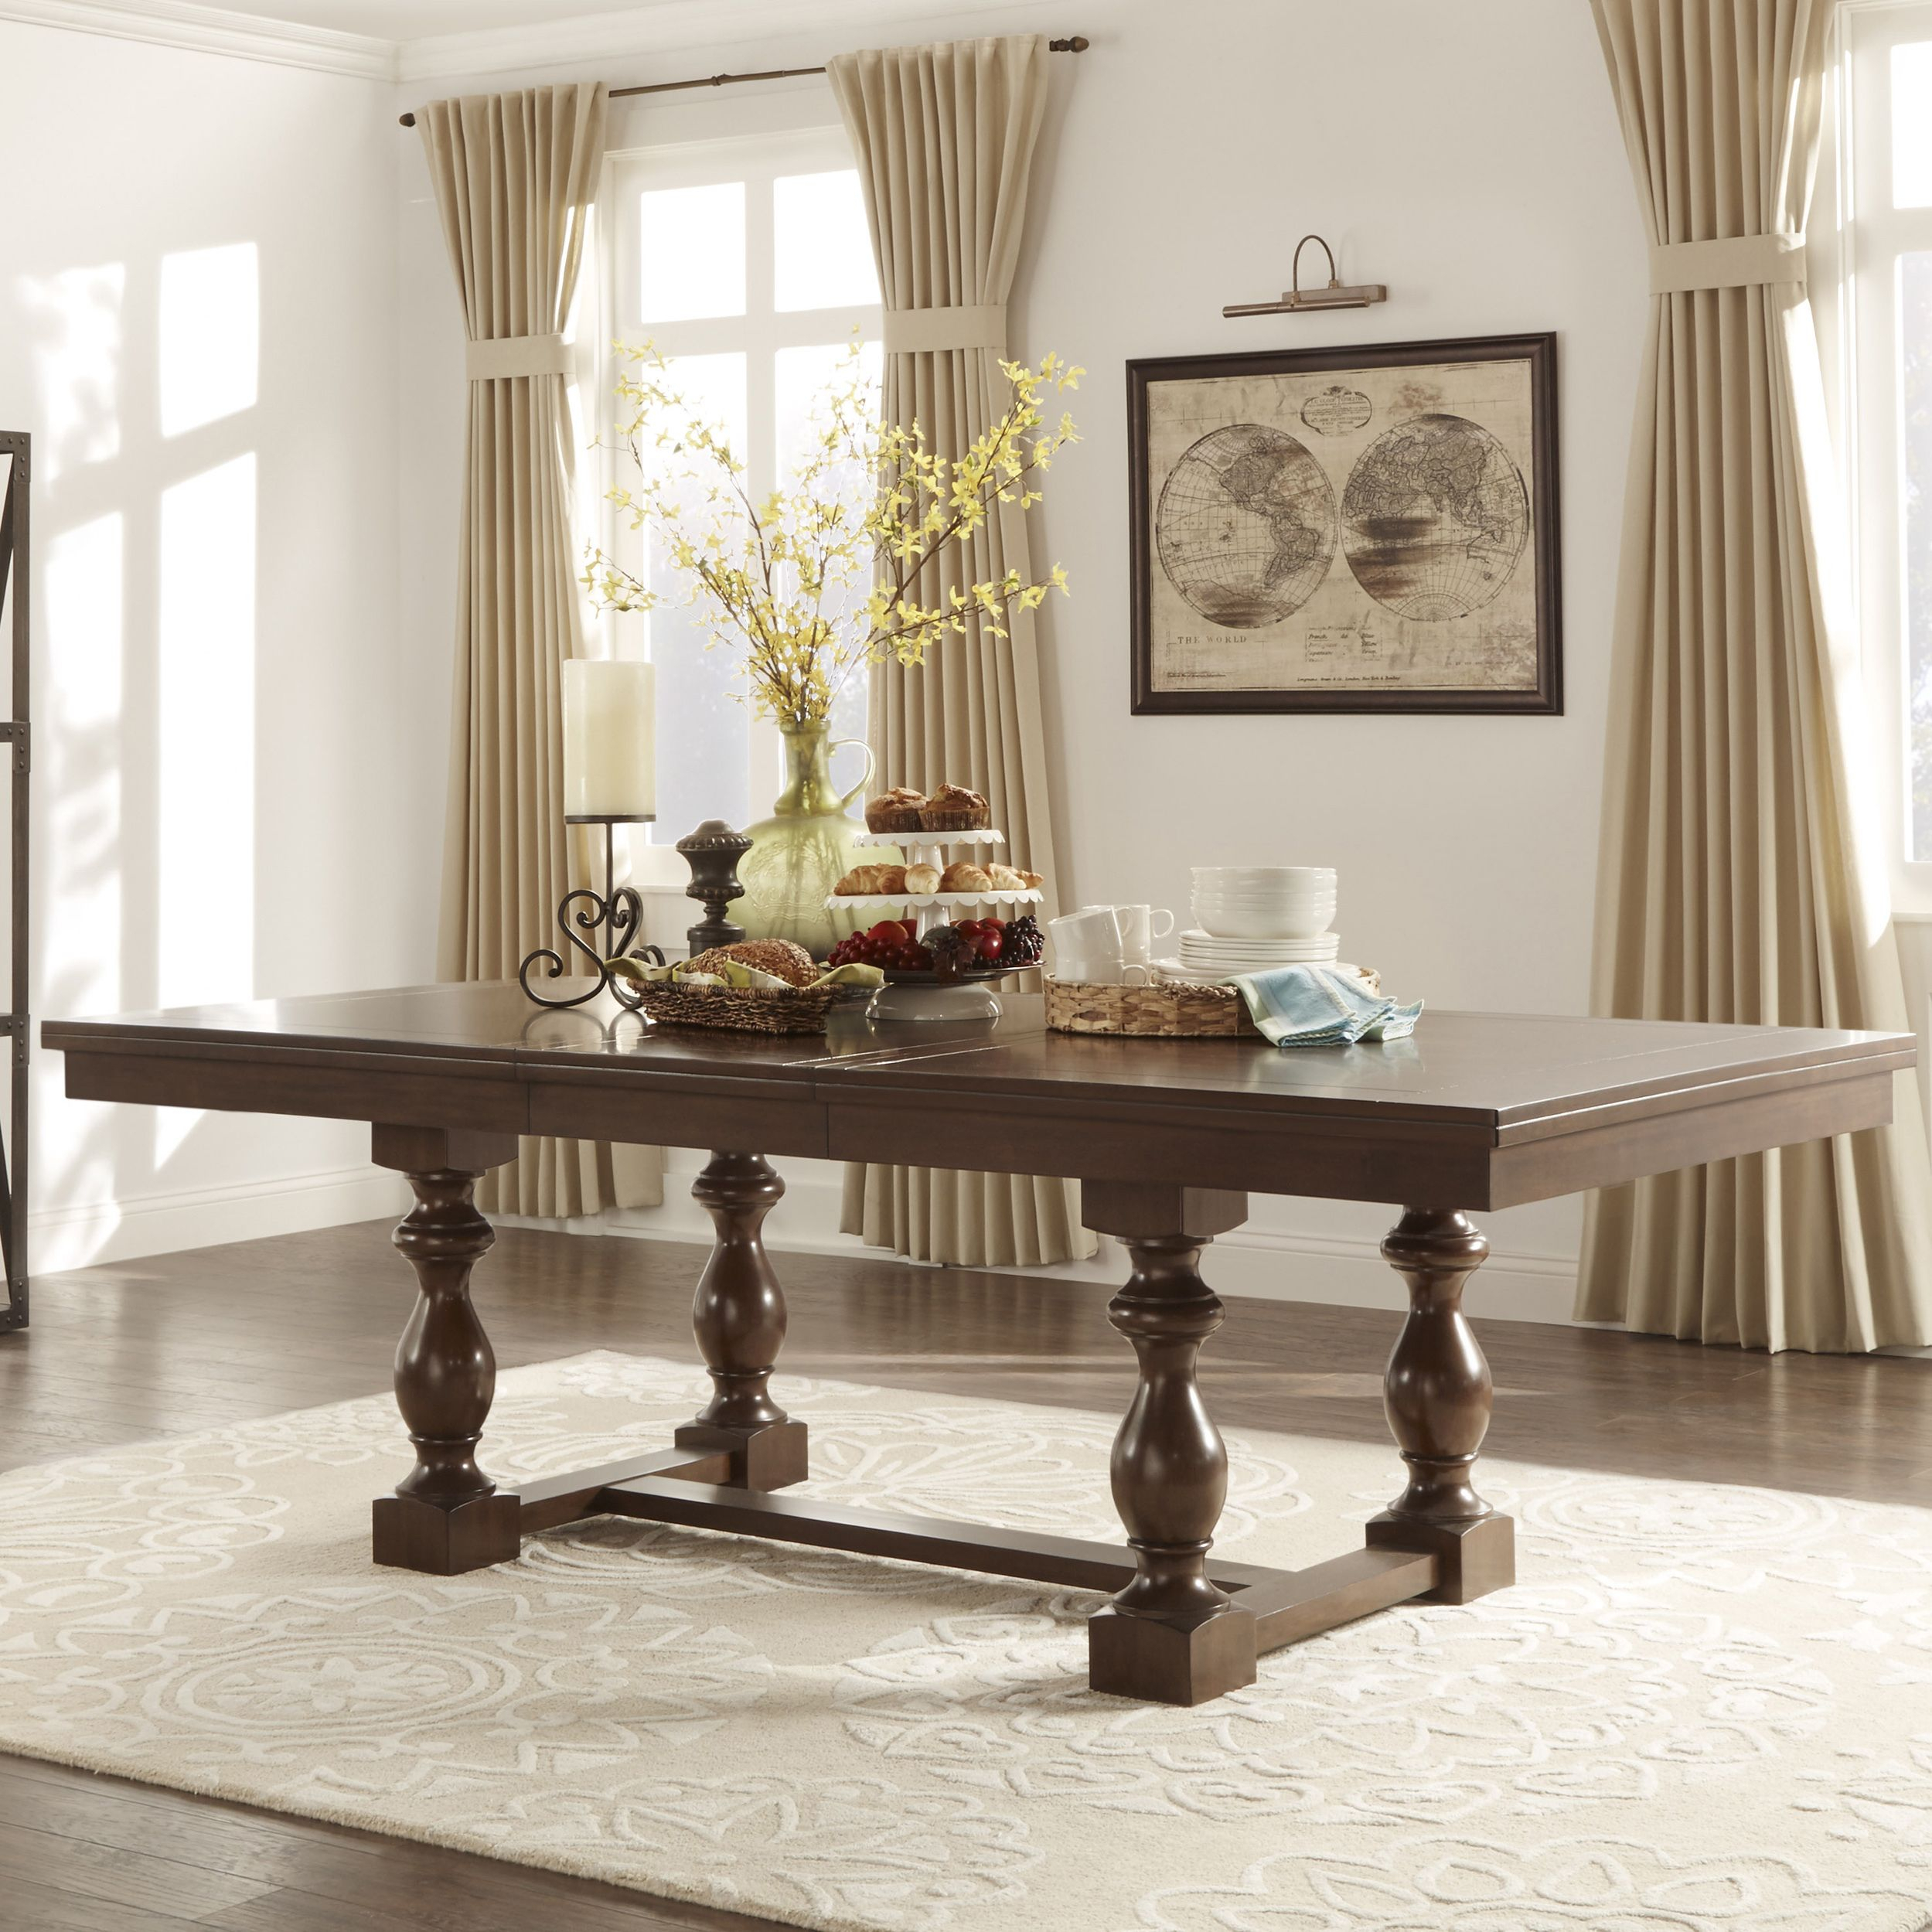 Tribecca Home Flatiron Baluster Extending Dining Table With Regard To Most Up To Date Hewn Oak Lorraine Pedestal Extending Dining Tables (View 11 of 25)